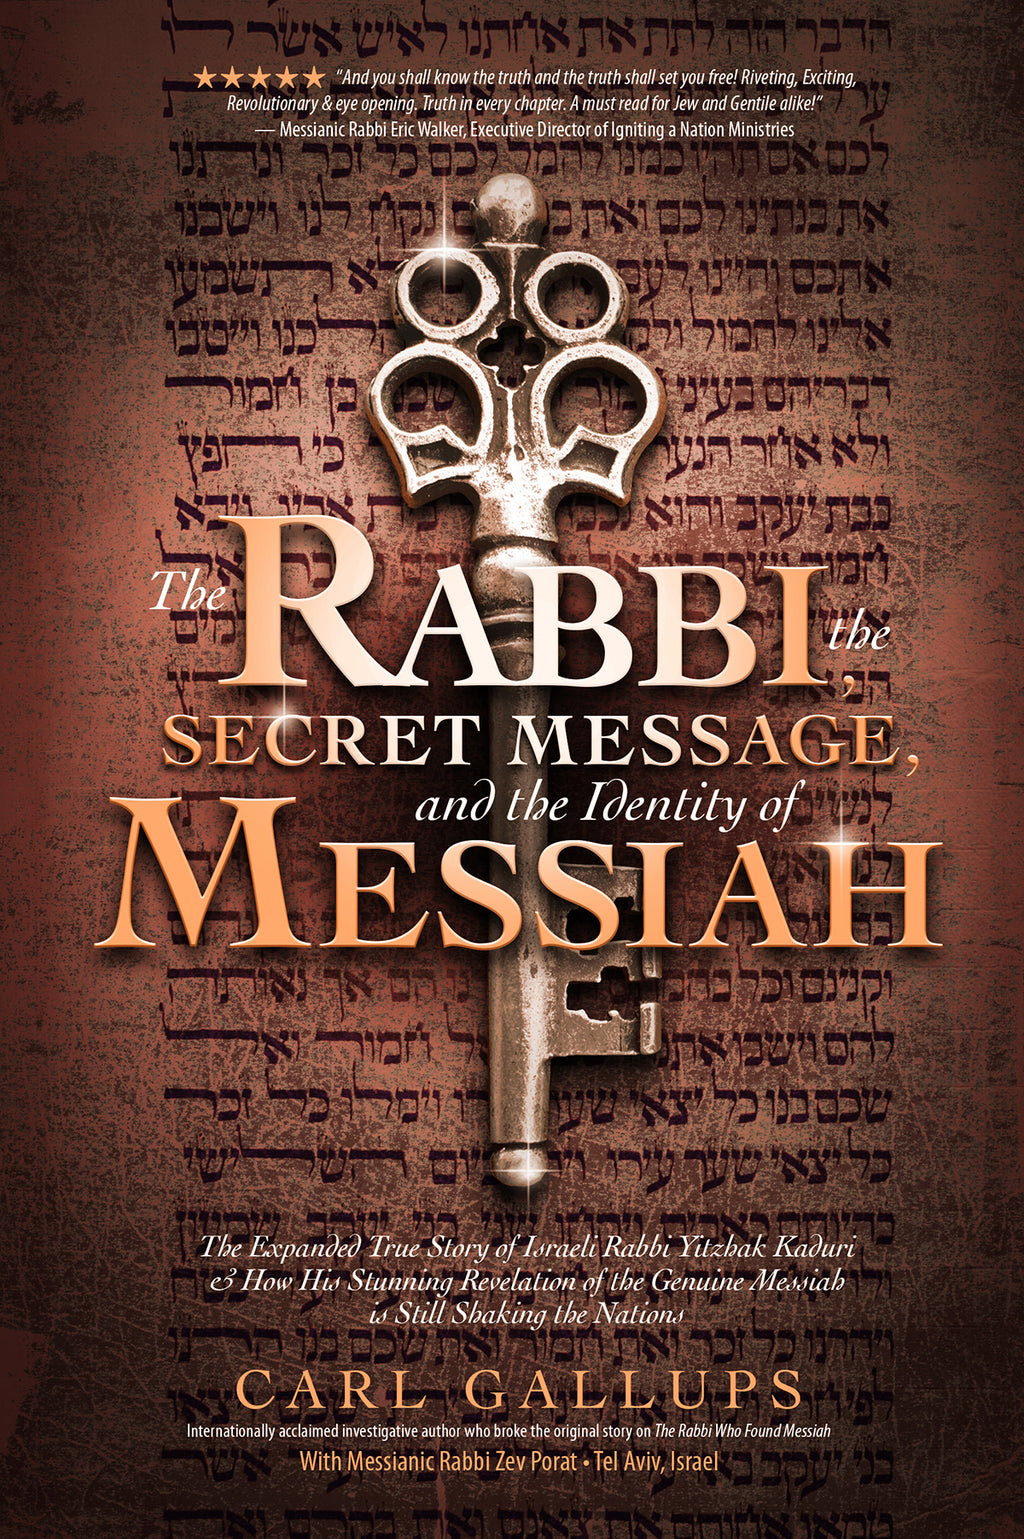 The Rabbi, the Secret Message, and the Identity of Messiah